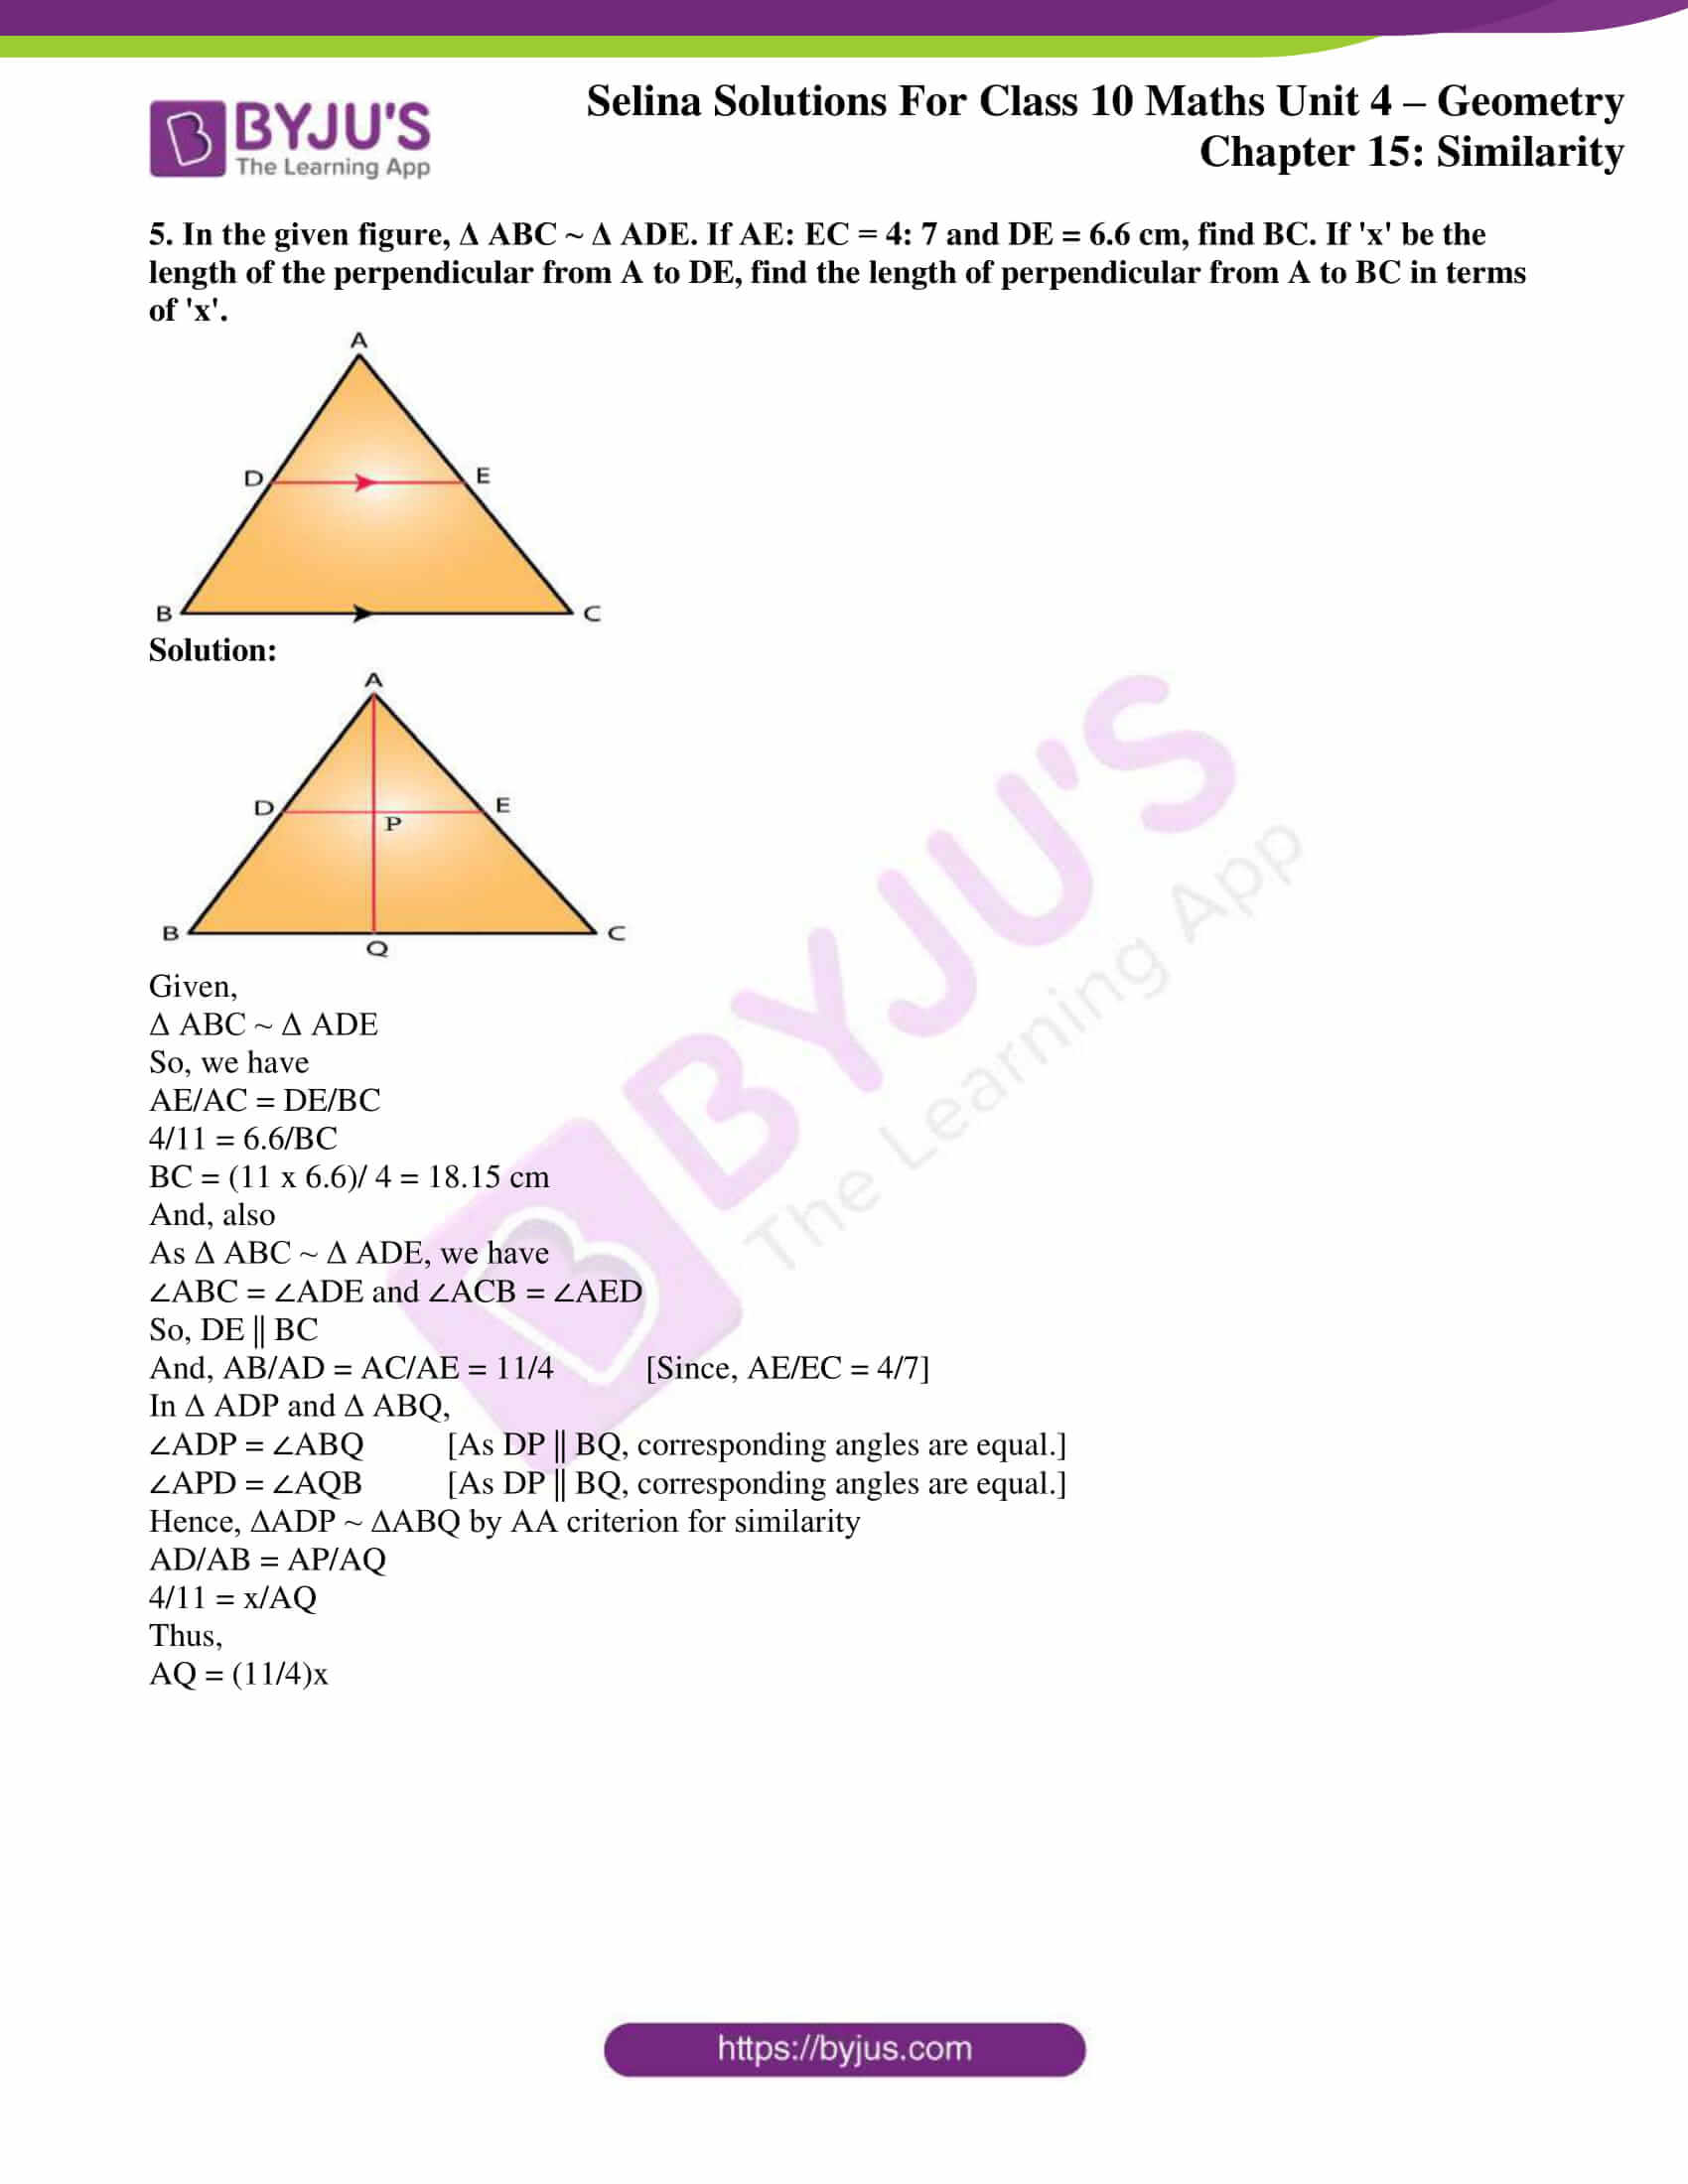 selina solution concise maths class 10 chapter 15 ex b 4